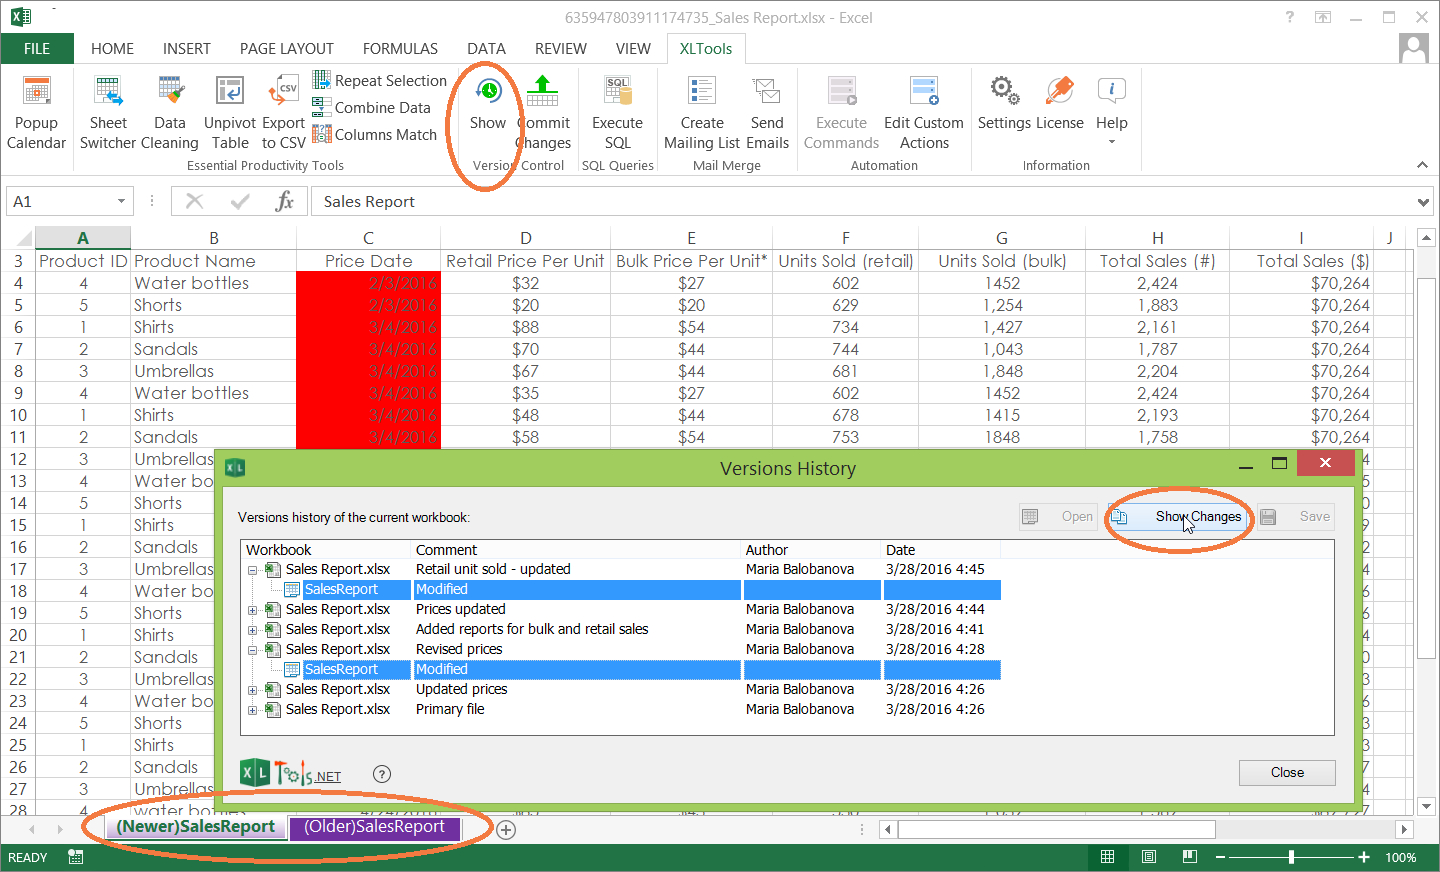 Excel Userform Spreadsheet Control For Version Control For Excel Spreadsheets  Xltools – Excel Addins You